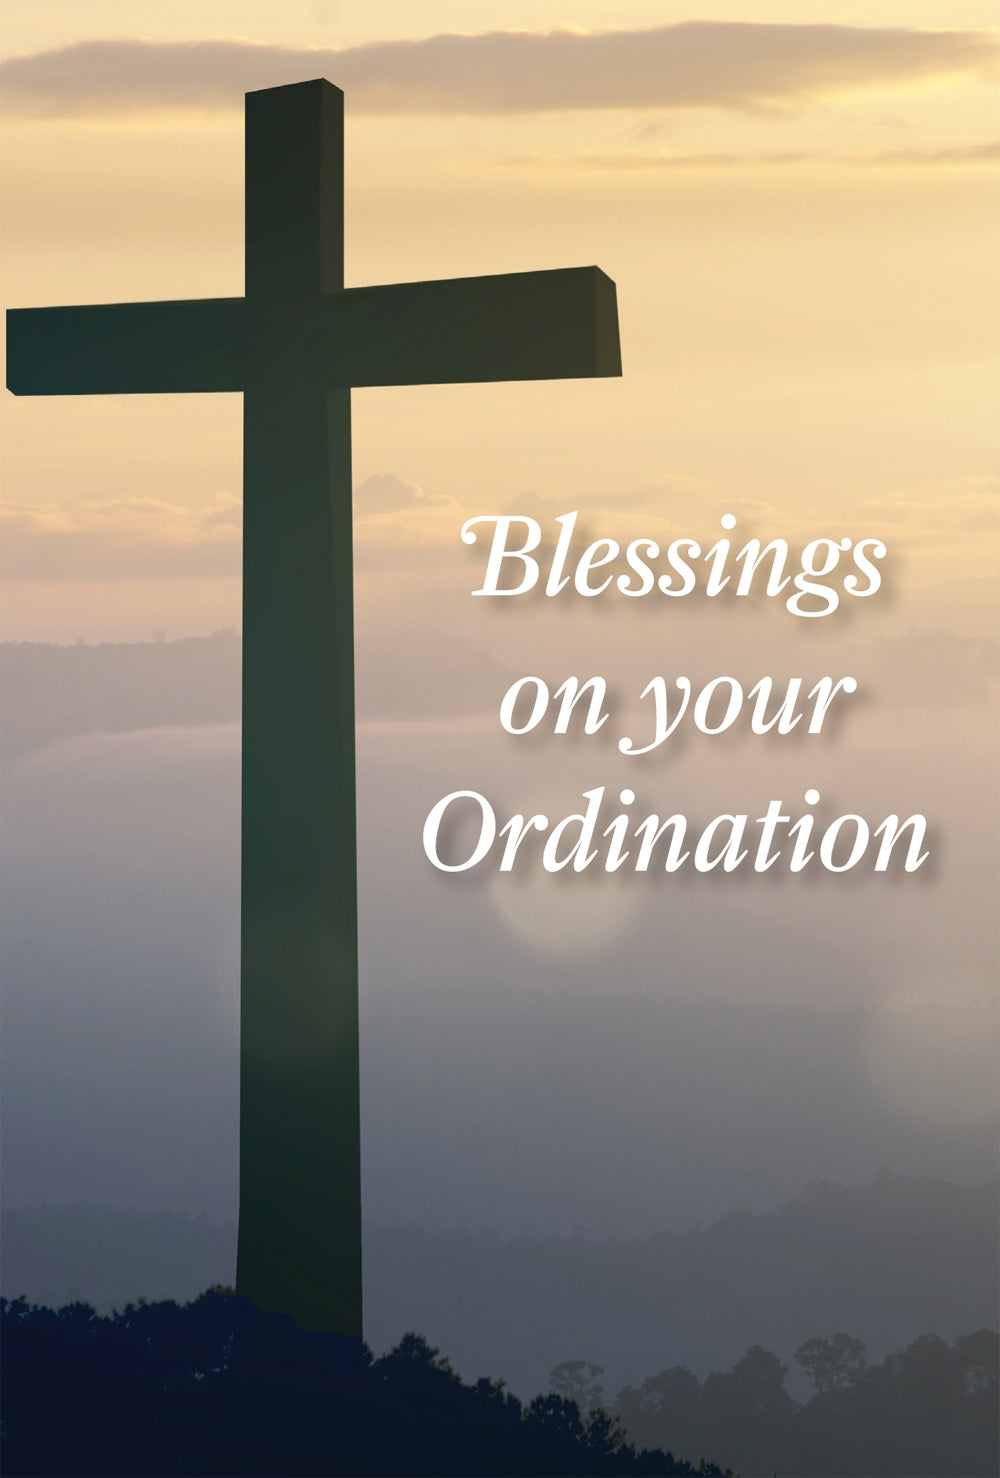 On Your Ordination - Cross Std Card Gloss (6 Pack)On Your Ordination - Cross Std Card Gloss (6 Pack)